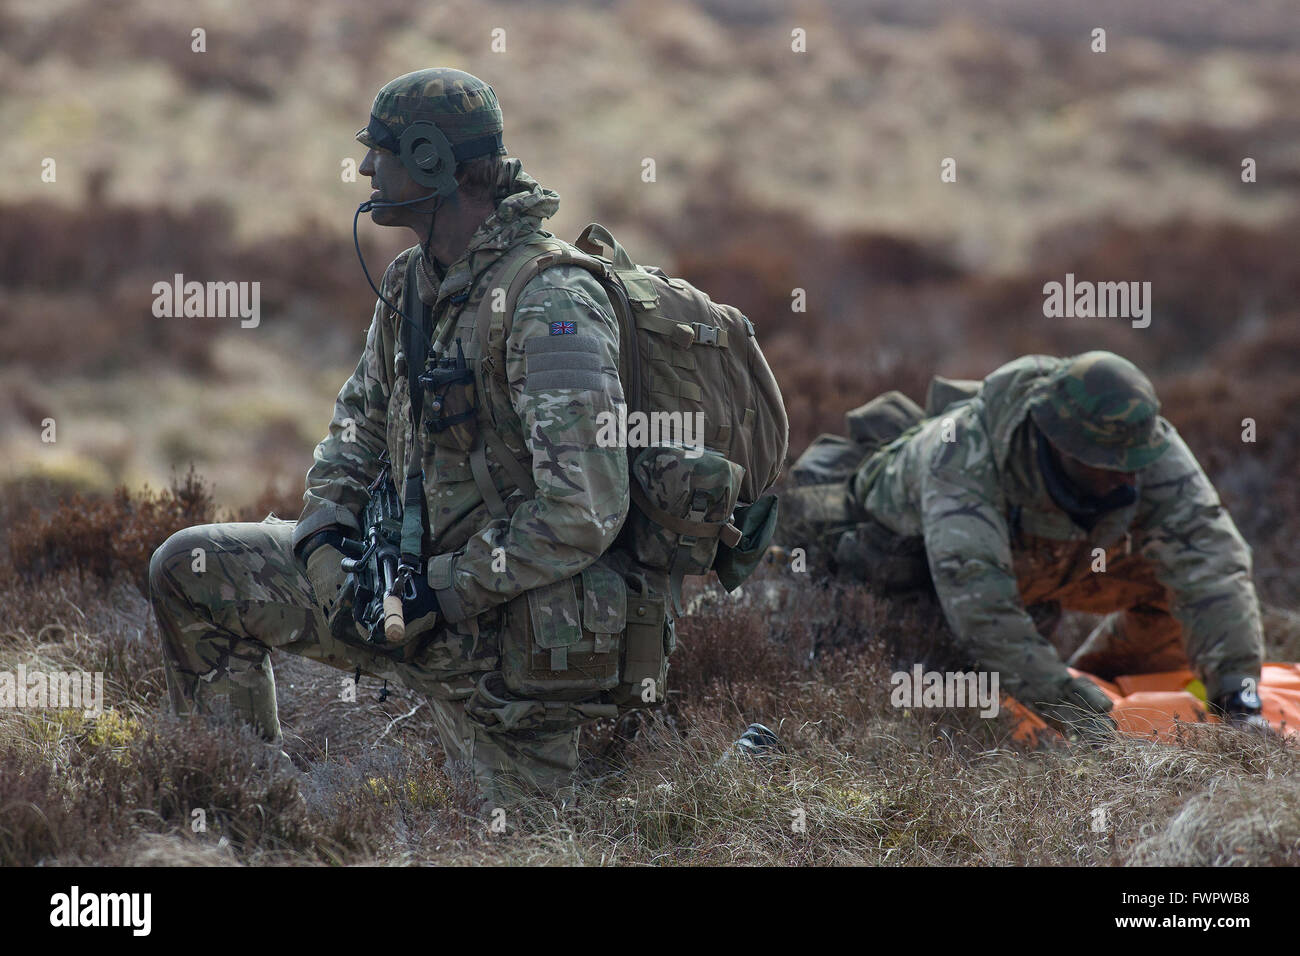 British Army commando soldiers train in a exercise on the moors in Scotland. - Stock Image